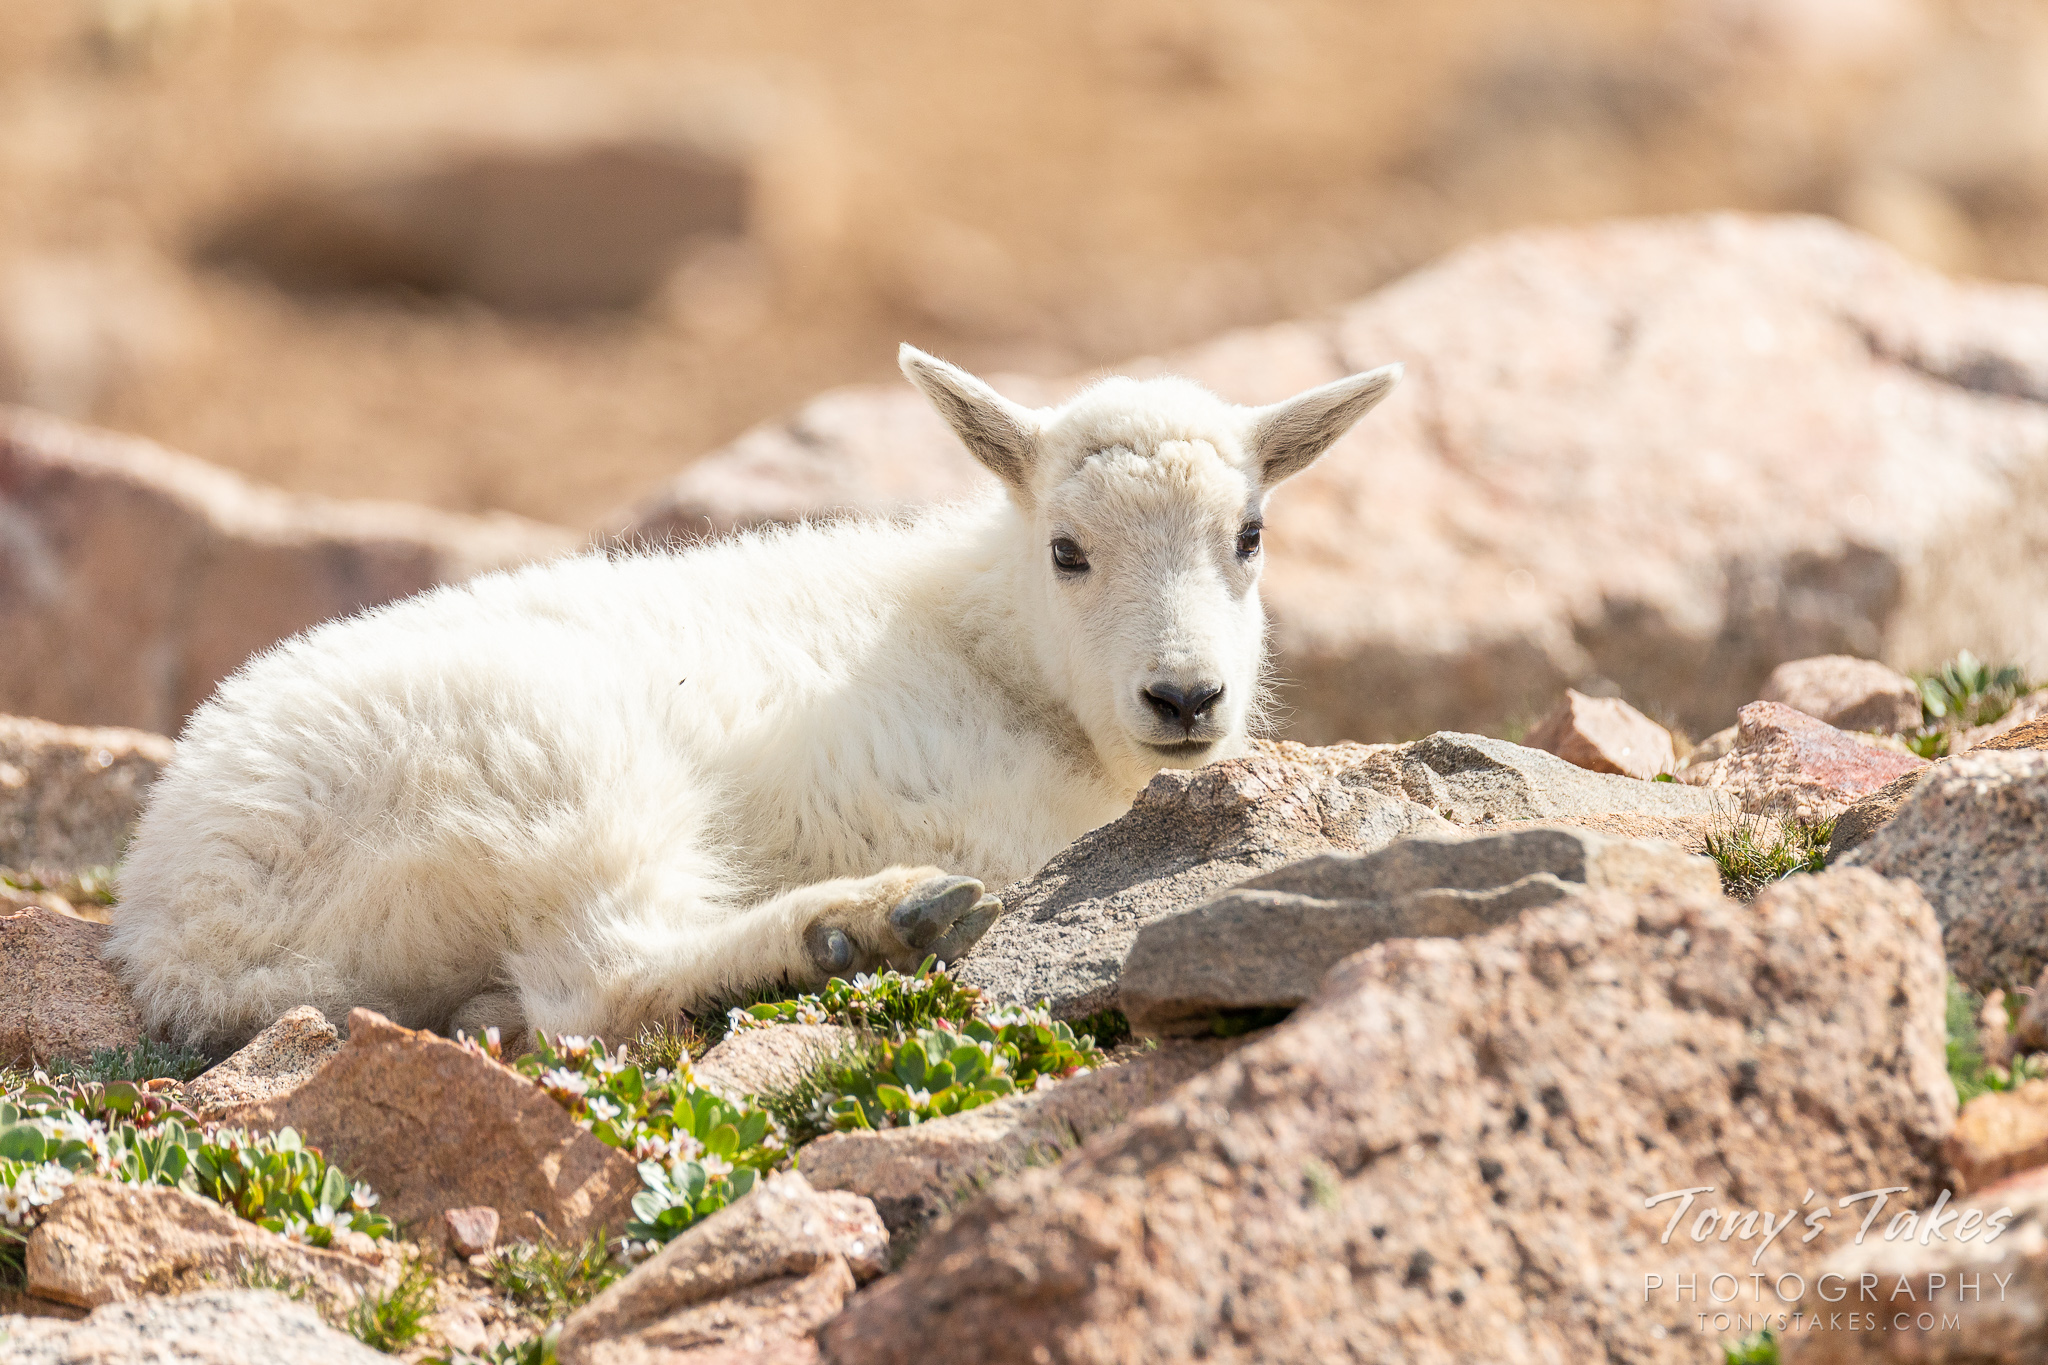 Little one lounging in the alpine tundra